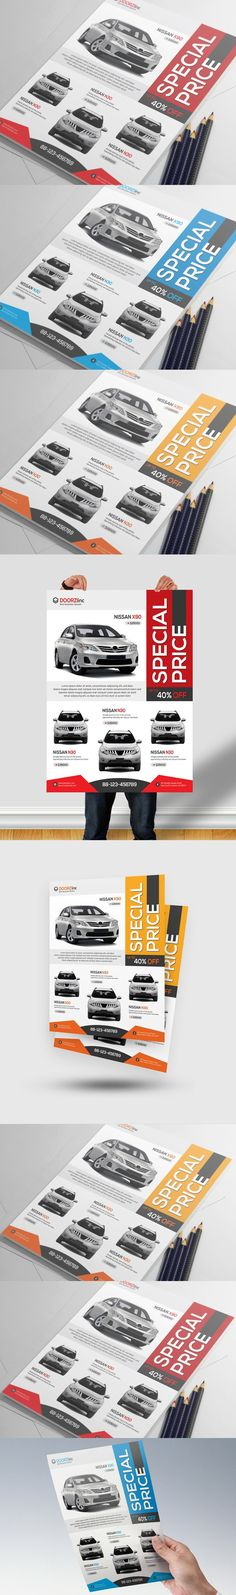 Rent A Car Flyer Template Cars, Flyers and Flyer template - car for sale template